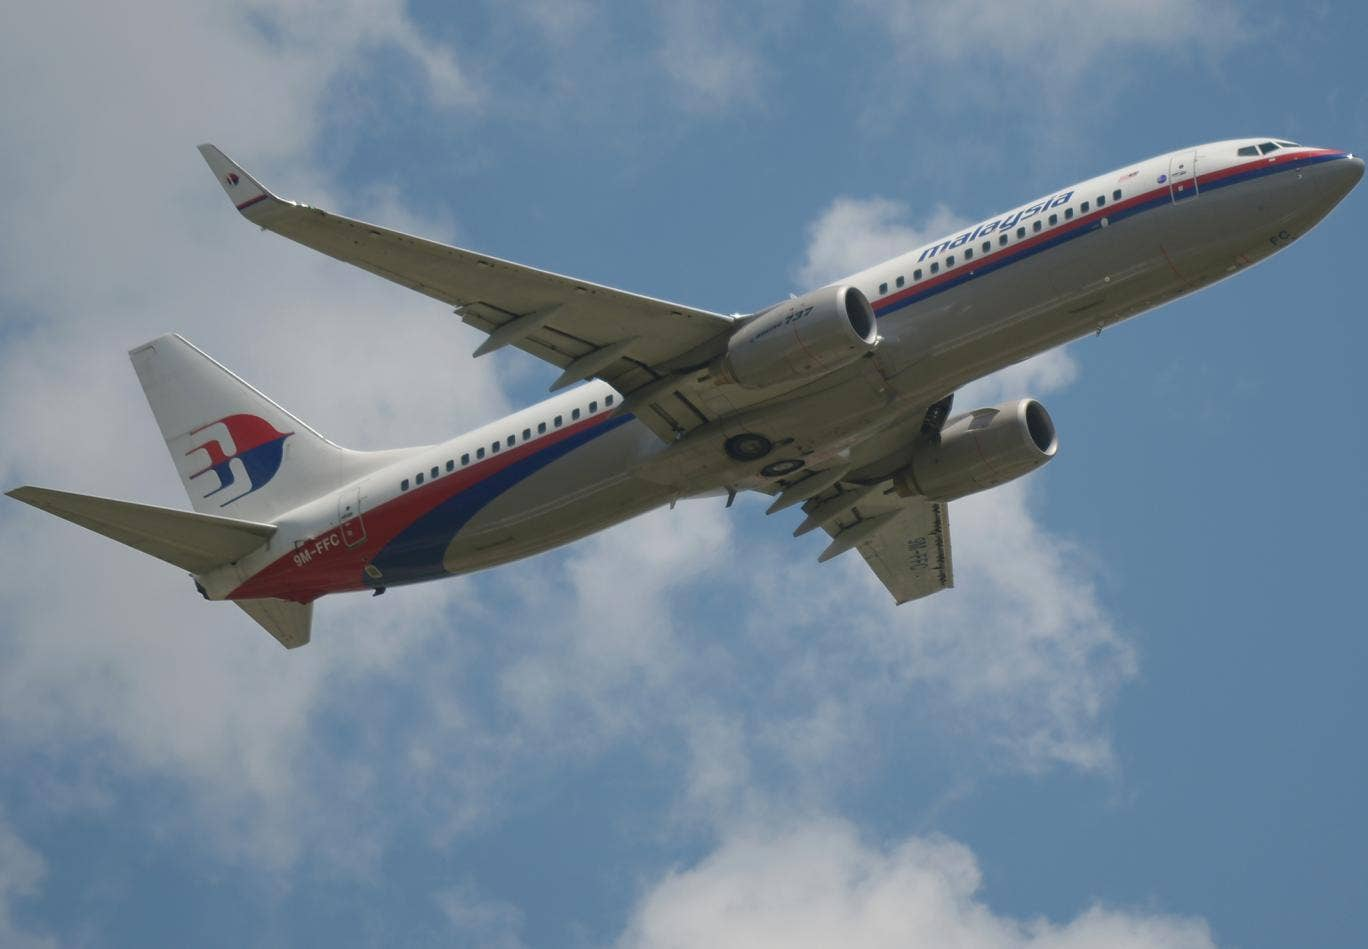 There have been a number of incidents involving Malaysia Airlines flights in recent weeks